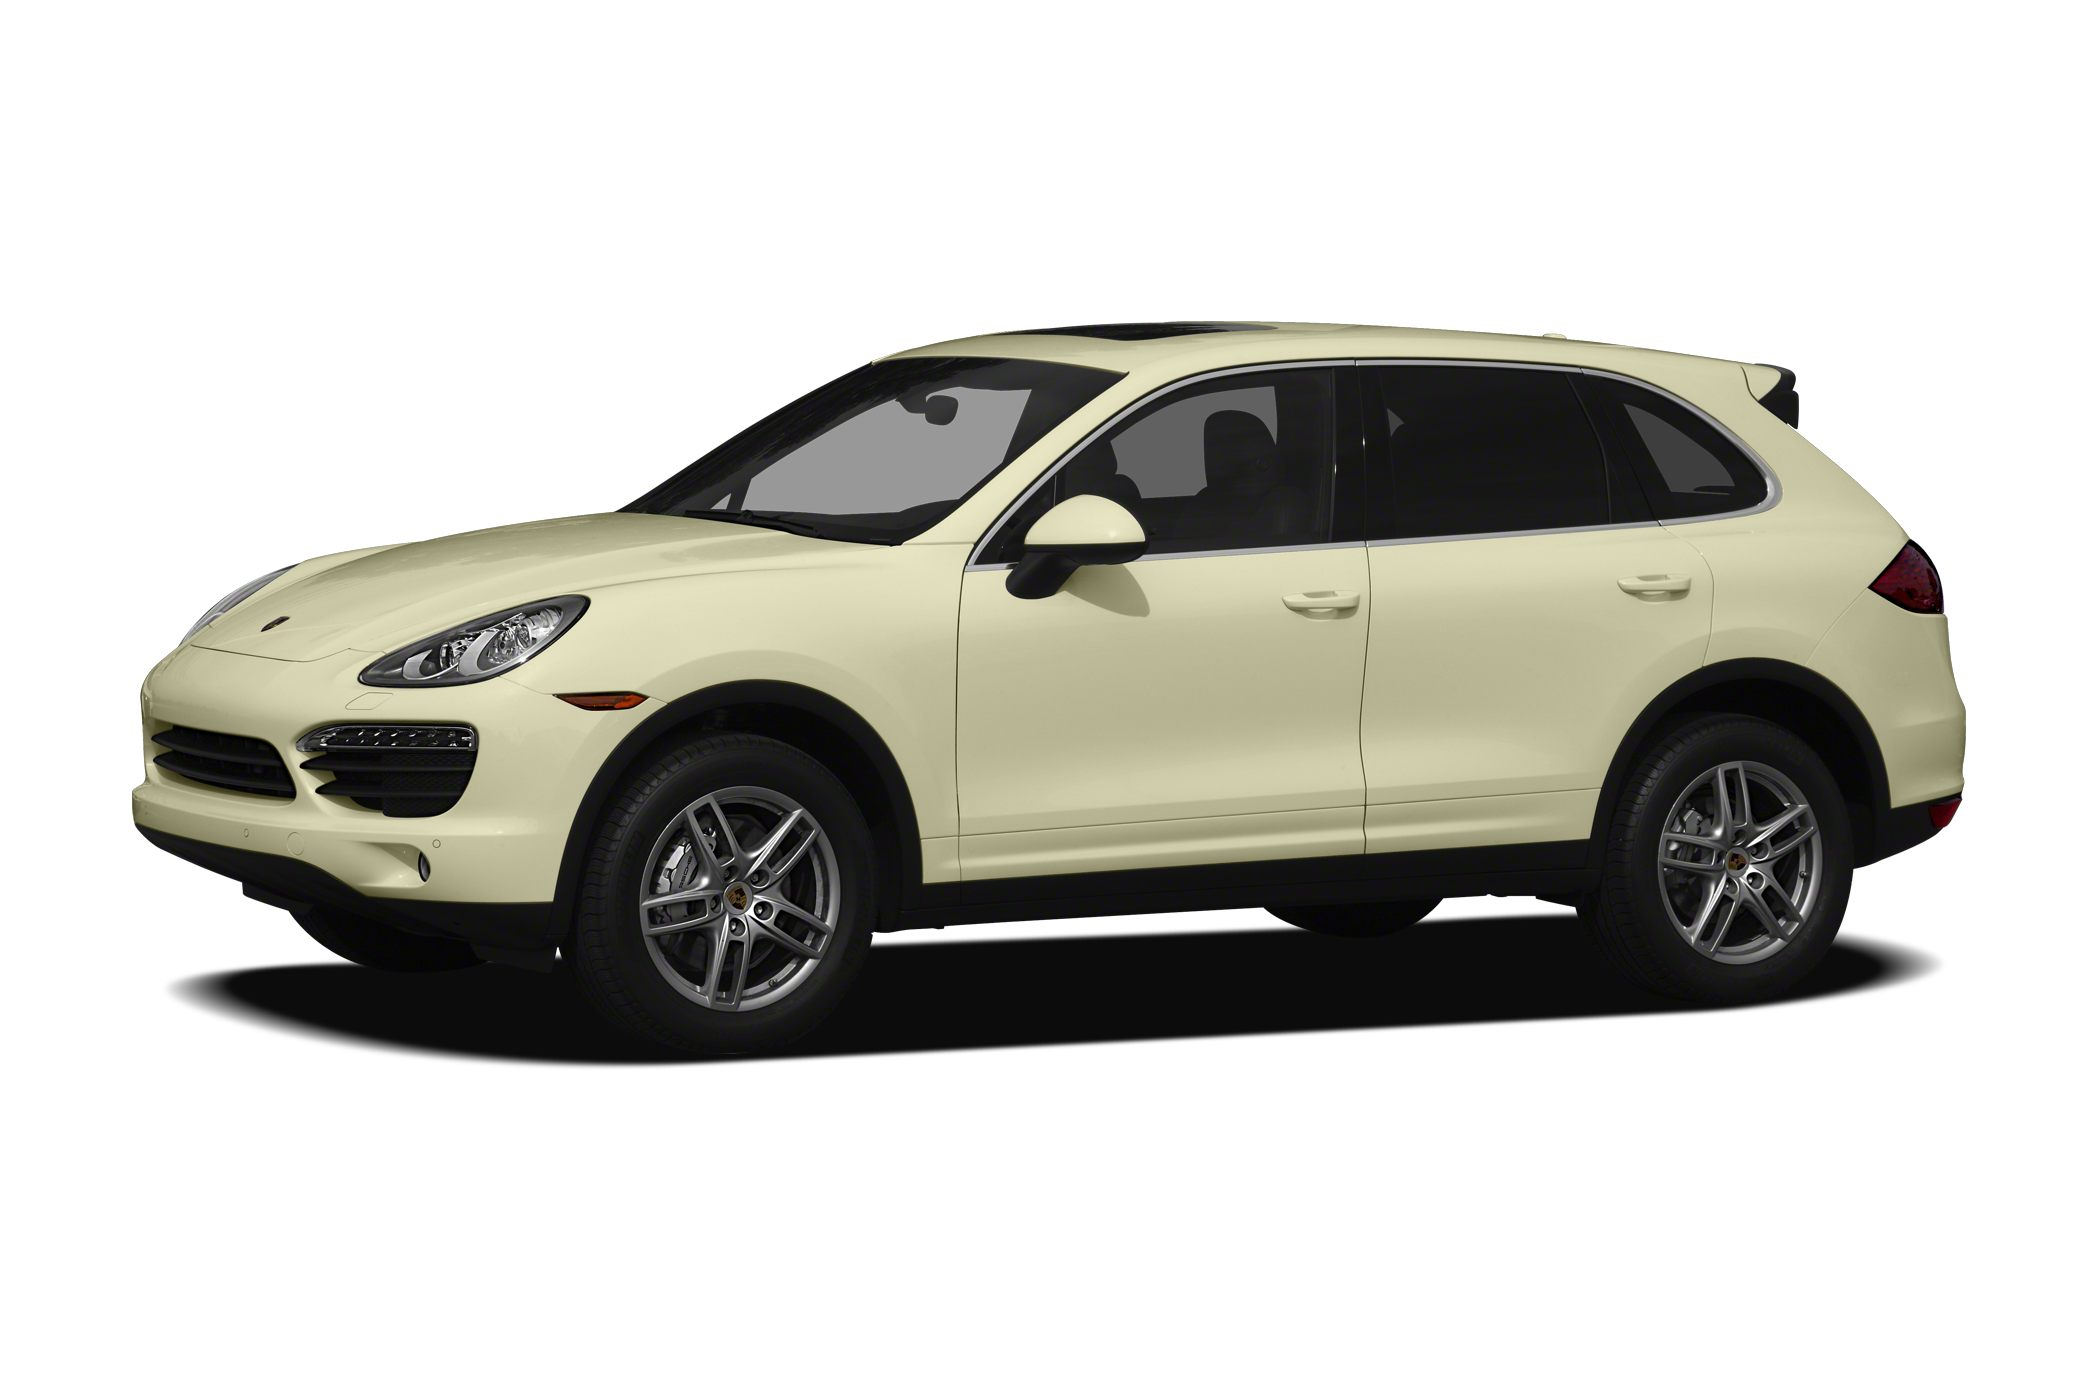 2011 Porsche Cayenne Base This vehicle comes with our best price guarantee Find a better on a sim